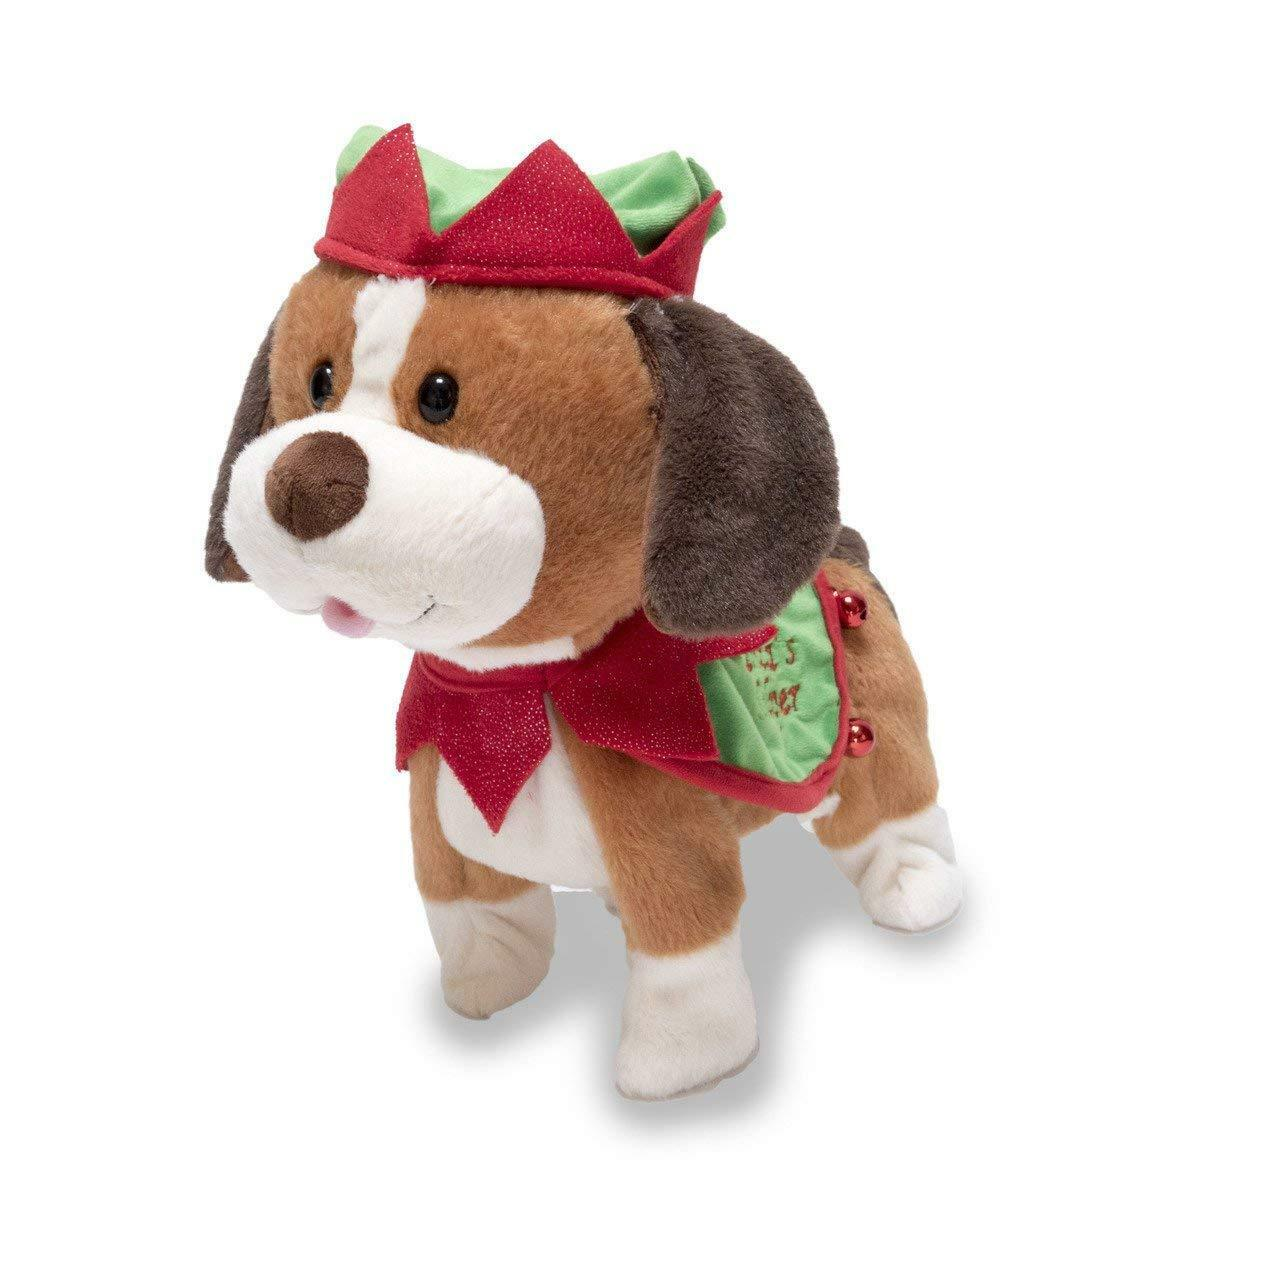 Cuddle Barn H8 Animated Christmas Plush Singing Toy 10in - Santa's Helper Puppy